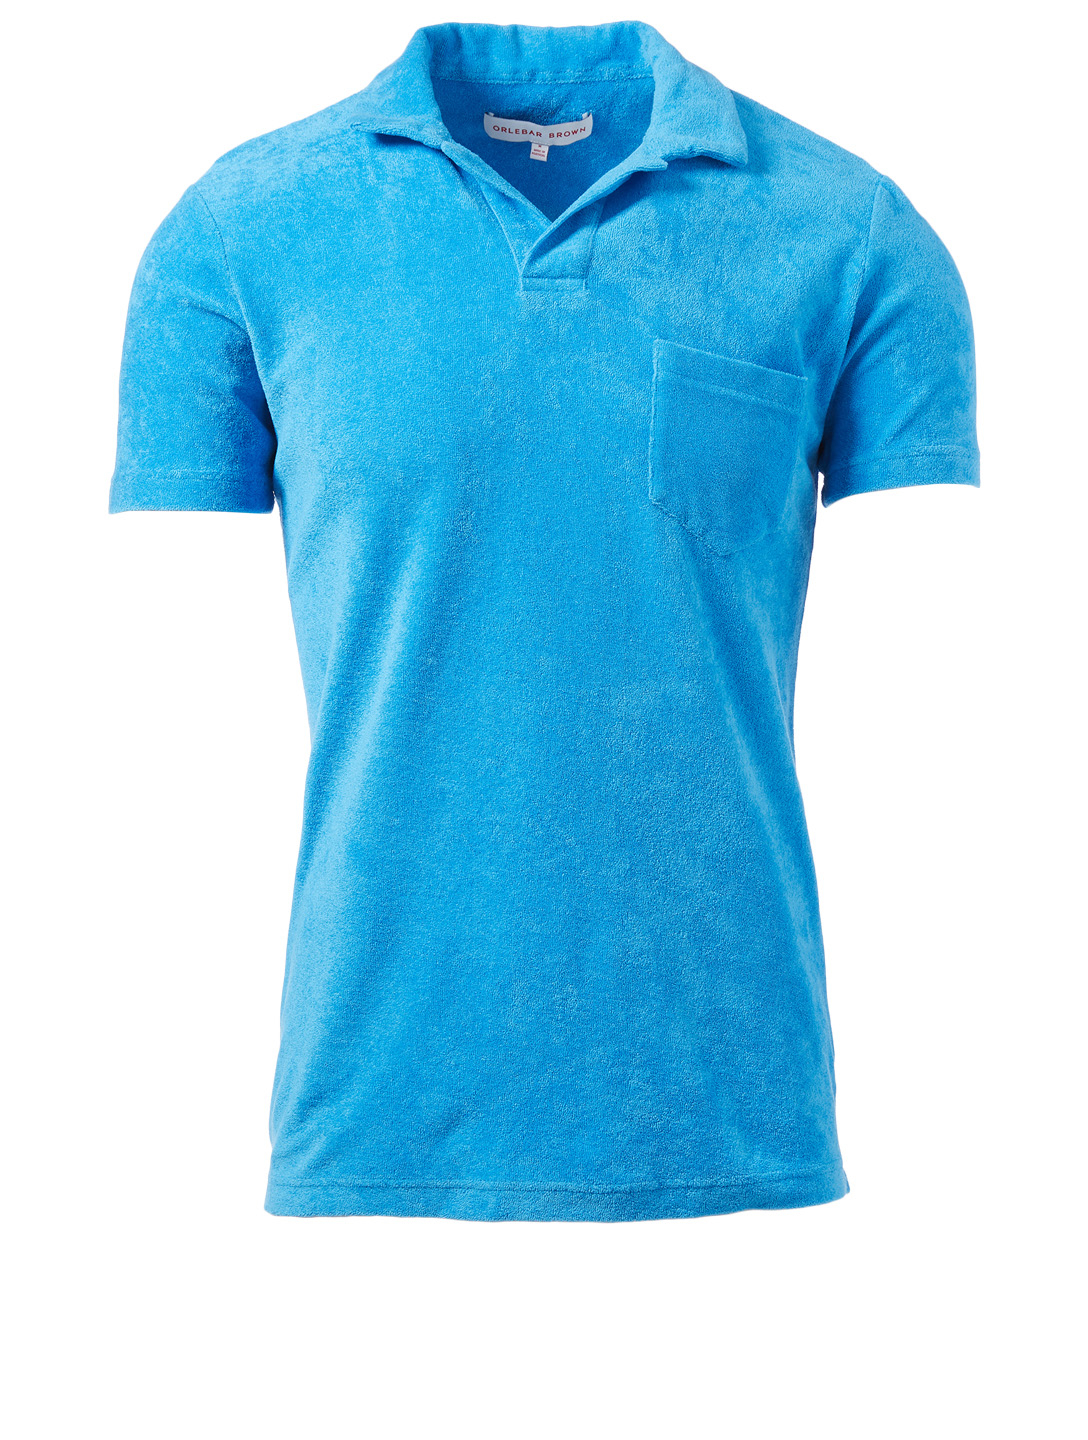 ORLEBAR BROWN Terry Towelling Resort Polo Shirt Men's Blue